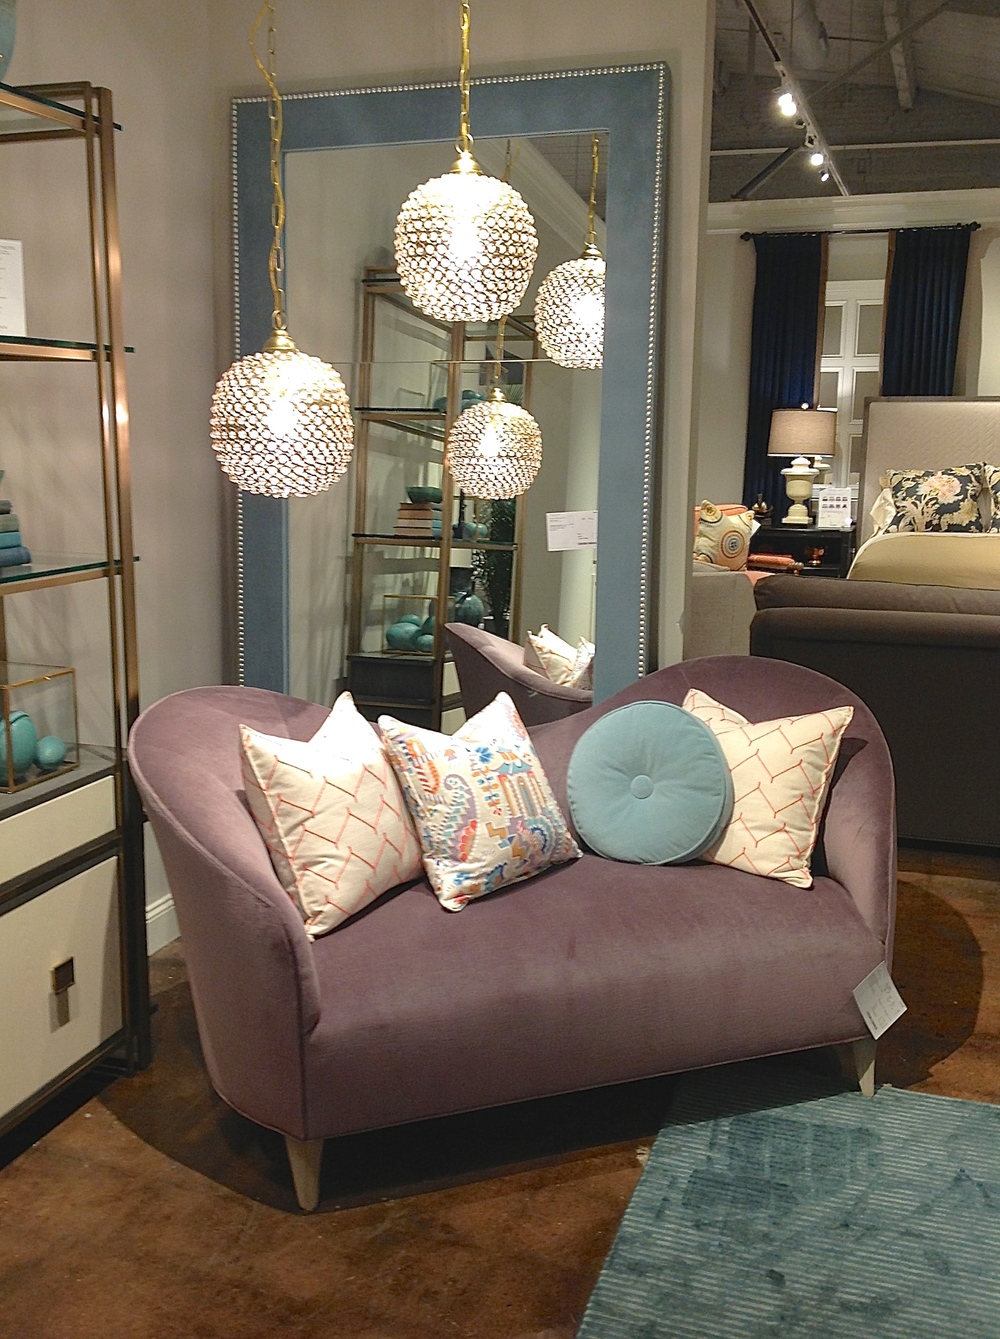 I'm loving everything about this setup - The playful lines of the sofa, the color scheme, the fun light pendants, and that beautiful mirror in the background! Customize any of these pieces with fabrics and finishes of your choice!